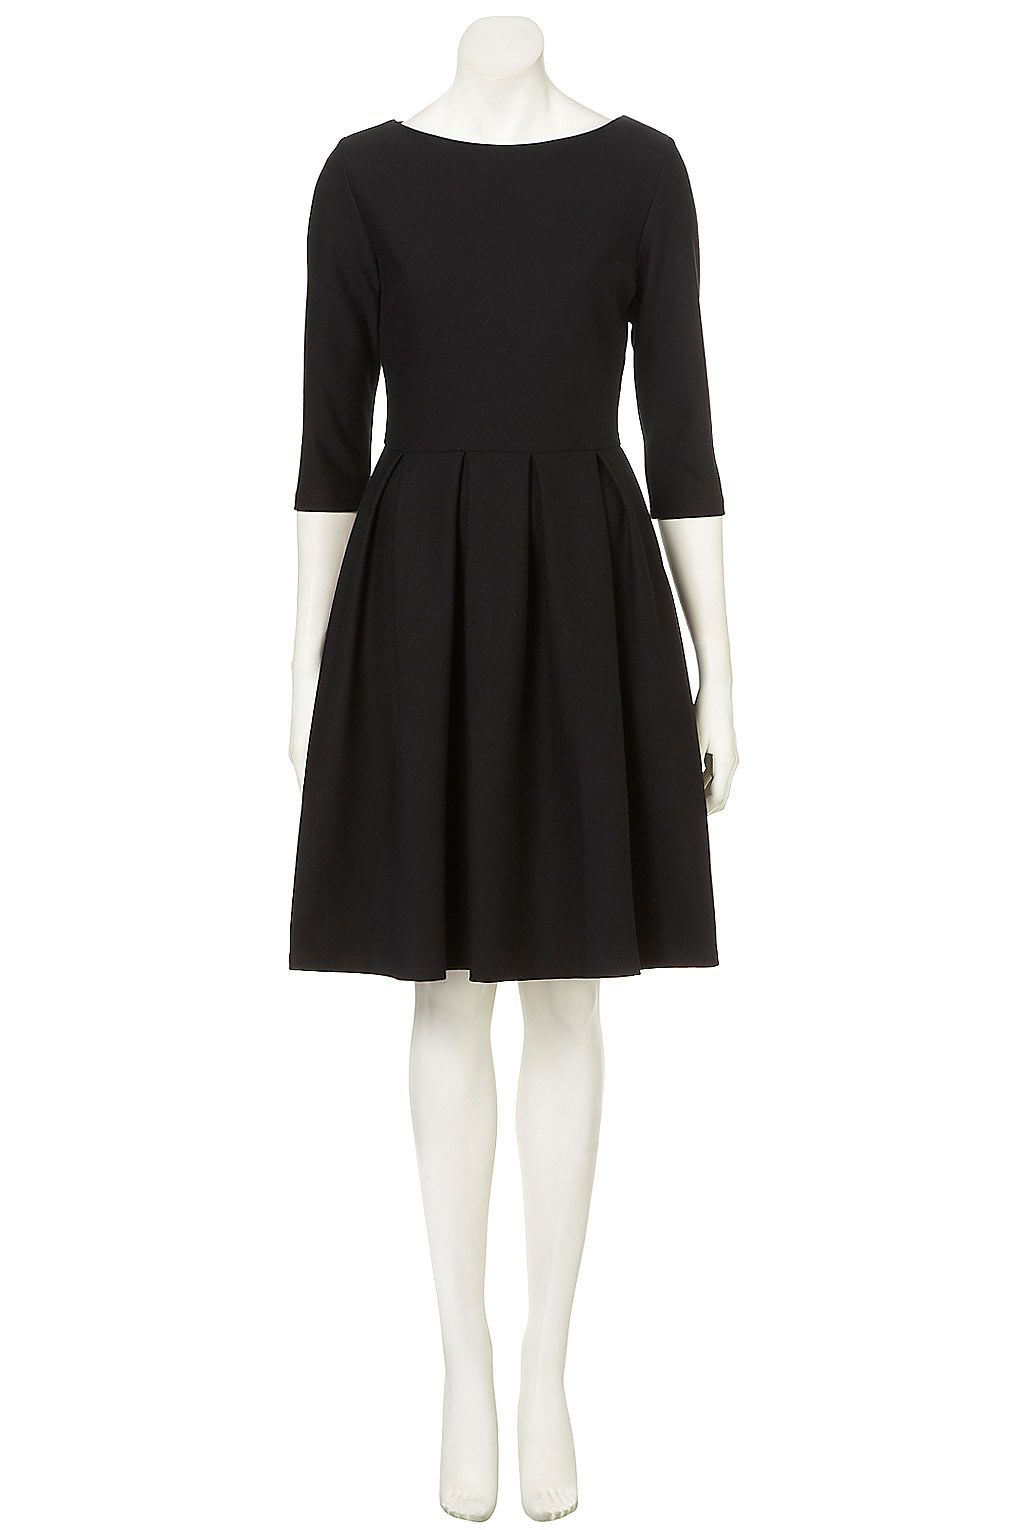 Christmas dress ideas for office party - Perfect Dress For Husband S Office Christmas Party